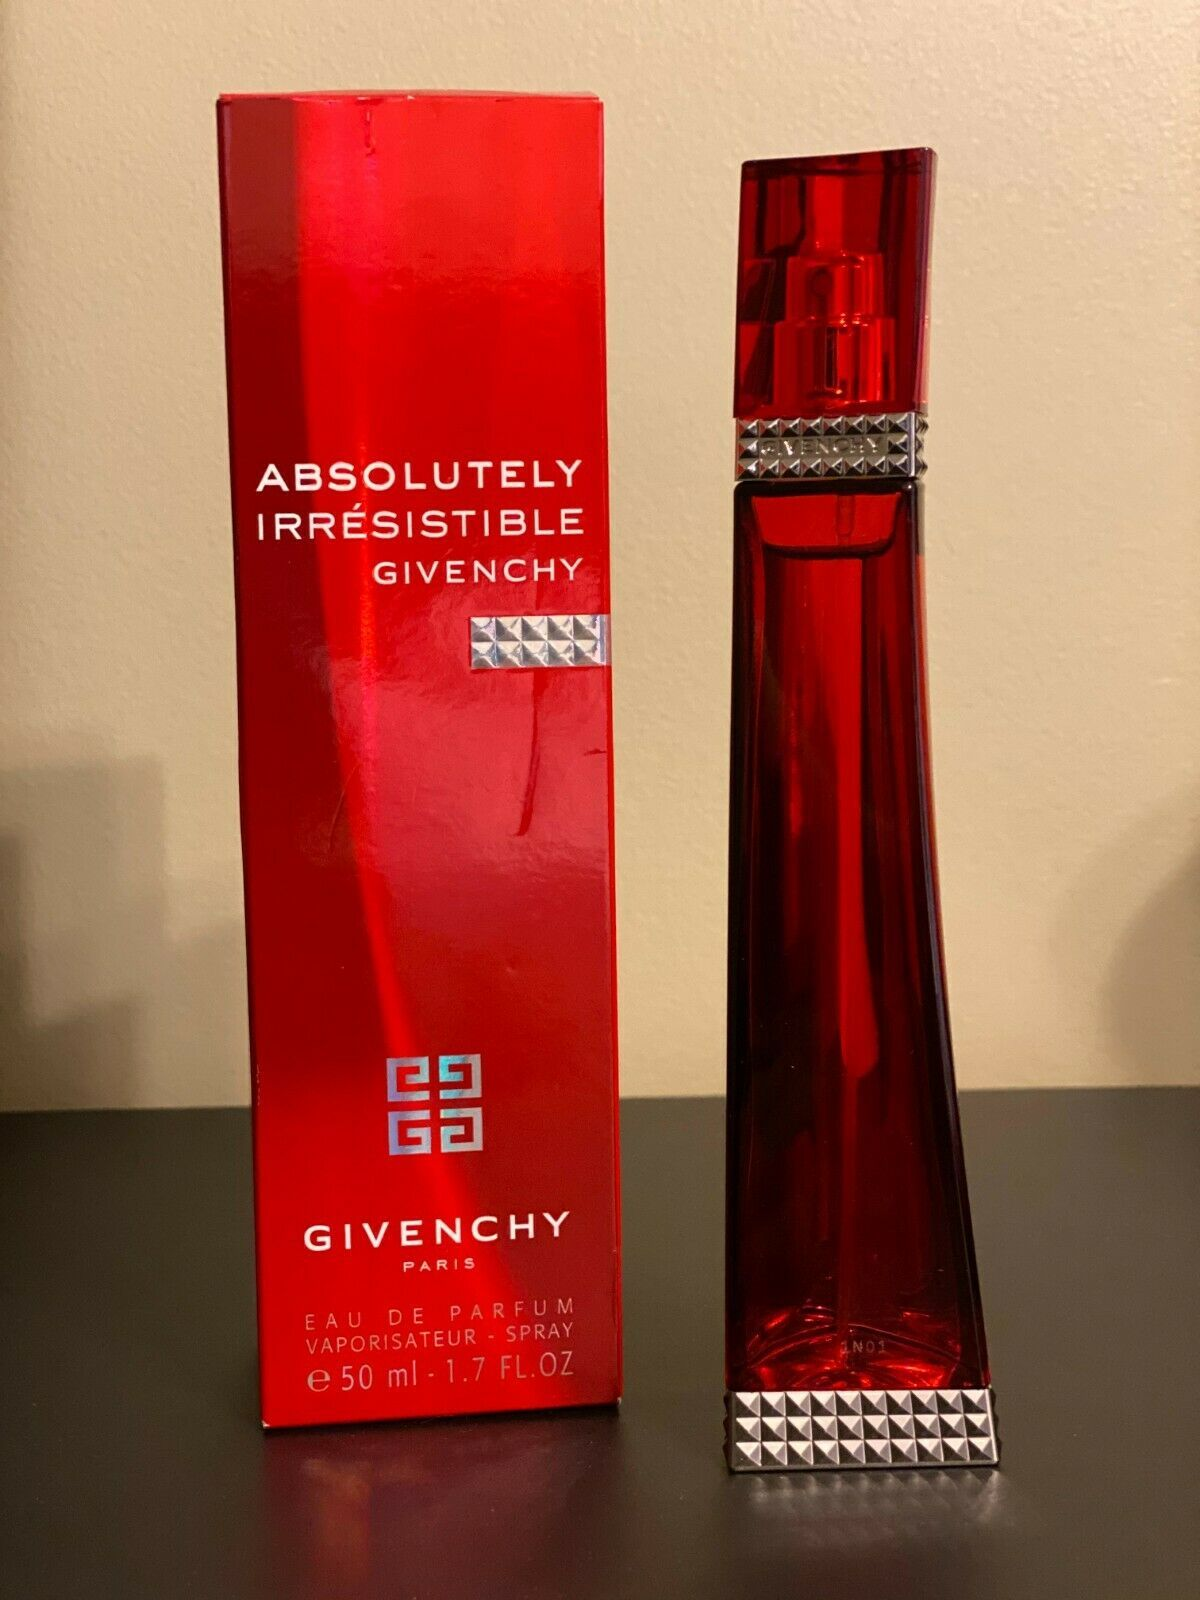 Aaagivenchy absolutely irresistible 1.7 oz tester perfume